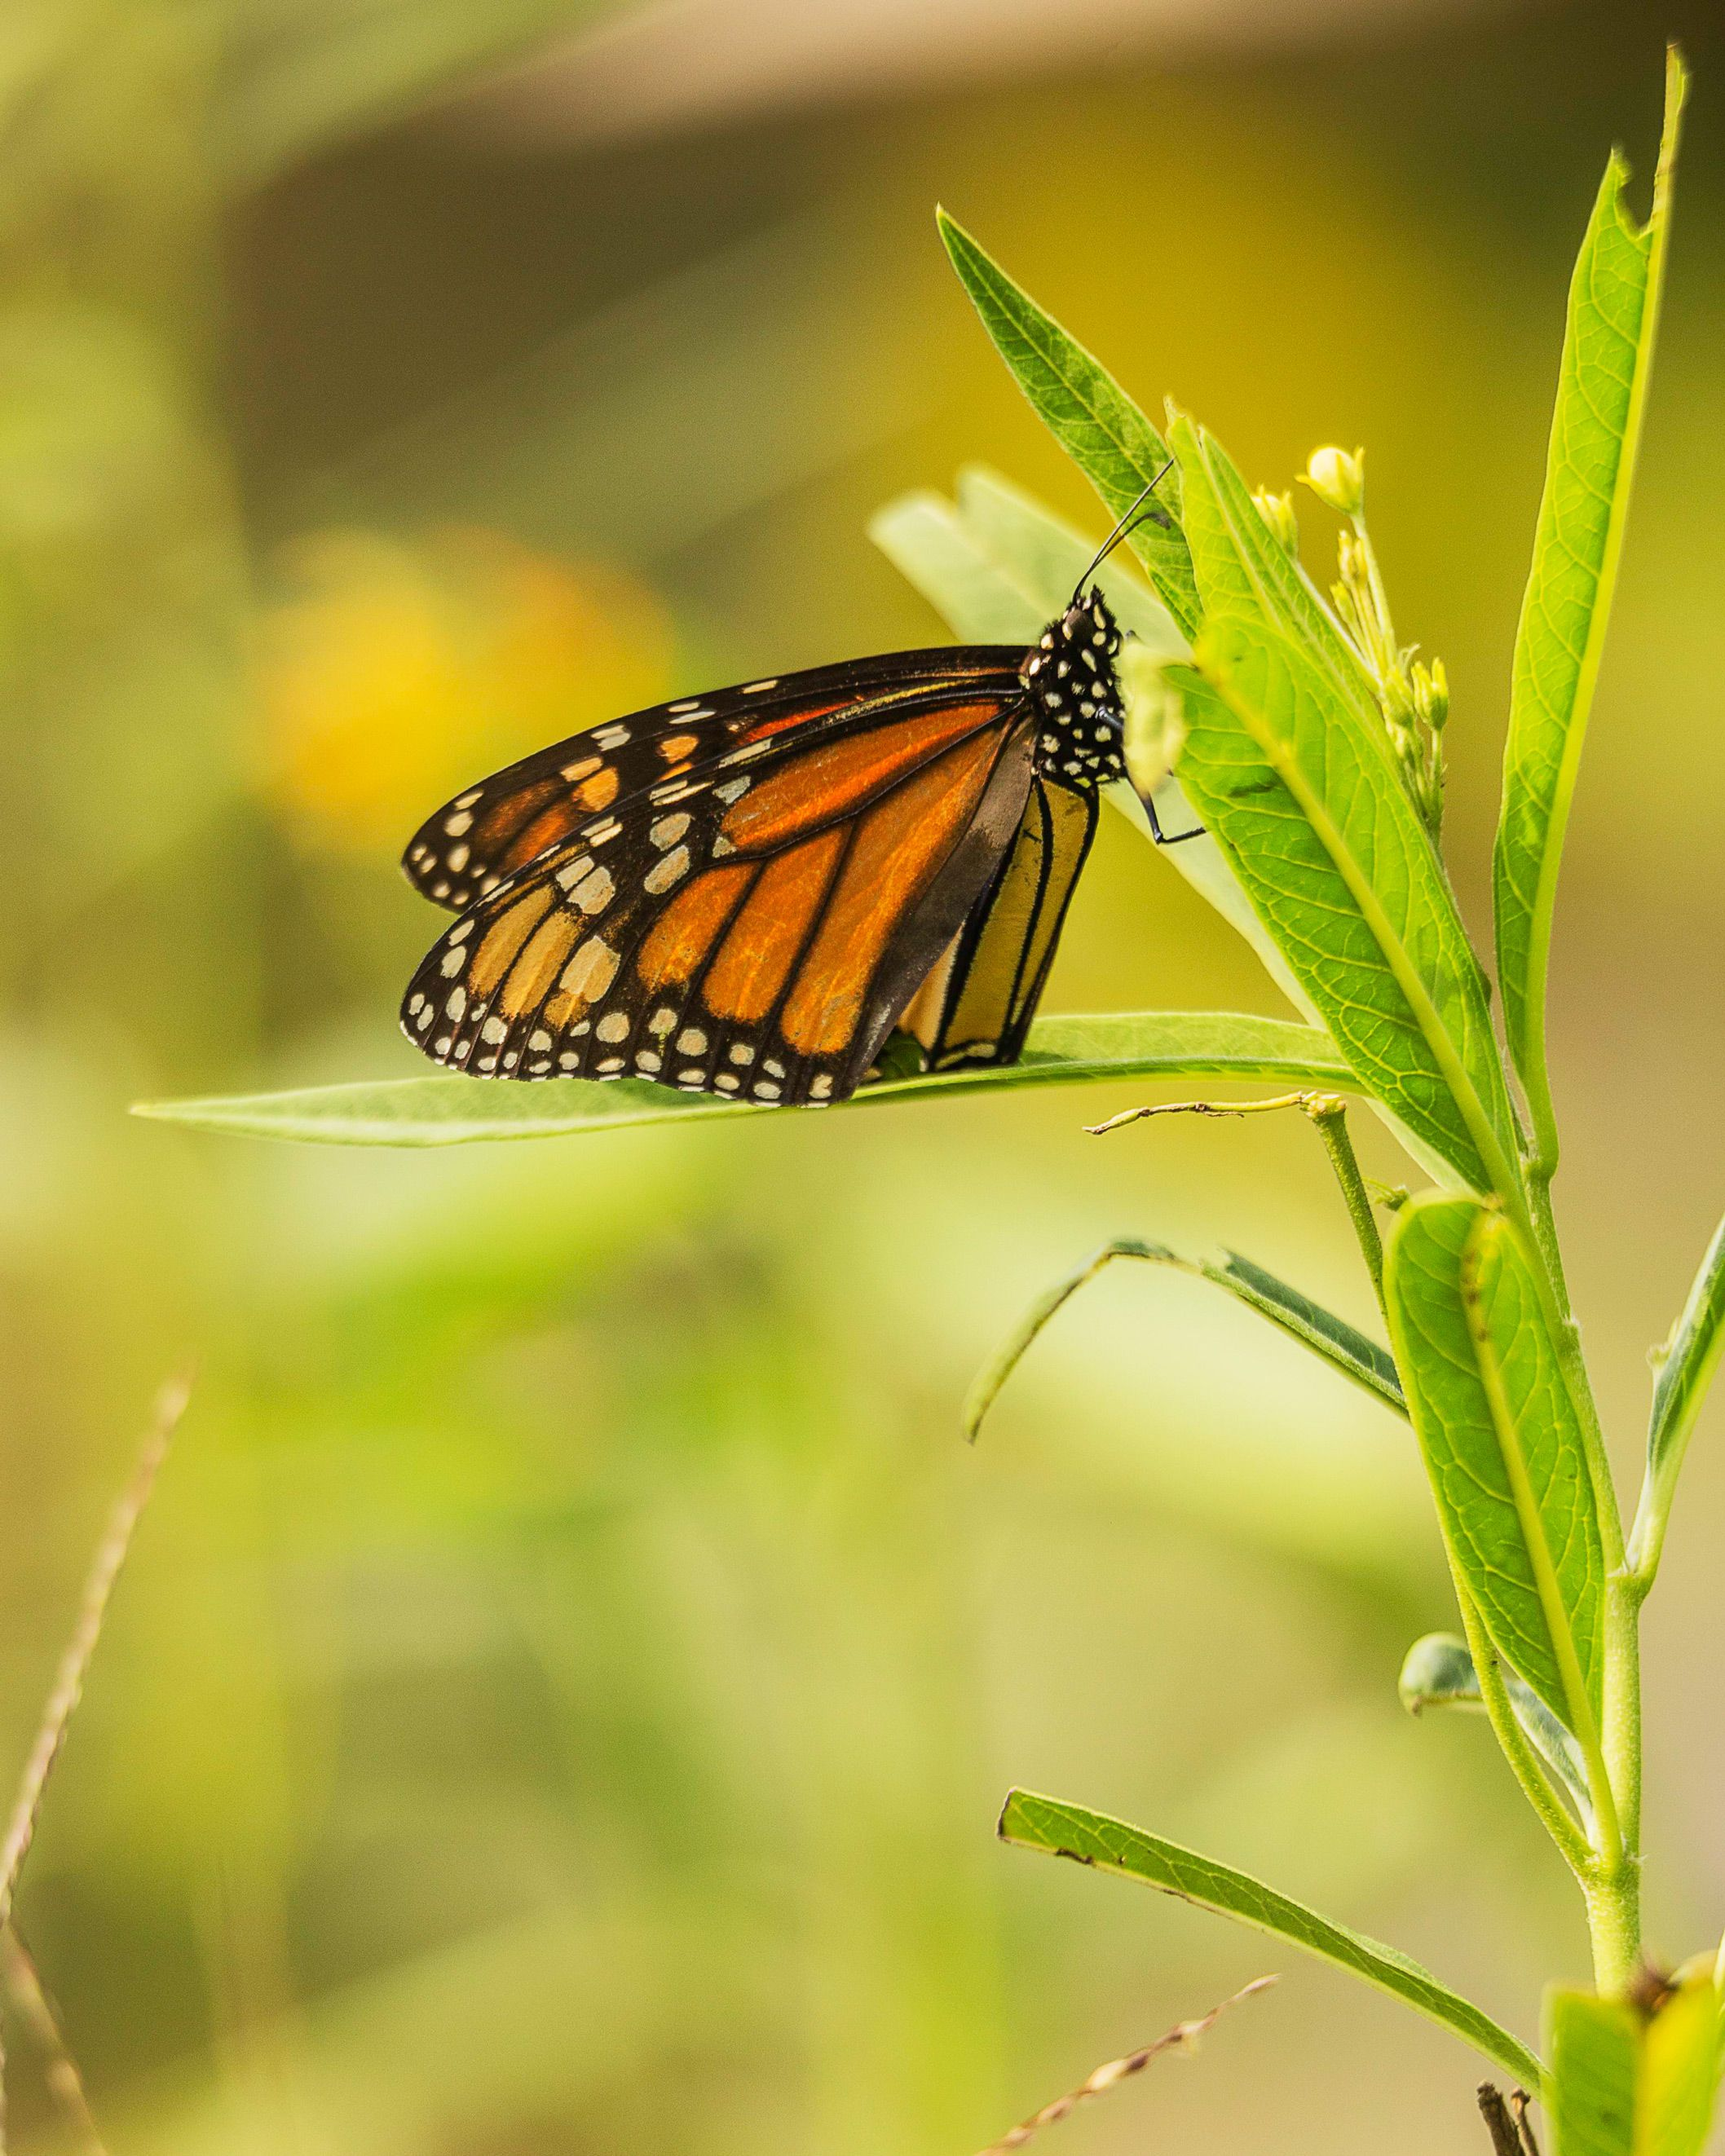 10 Ways To Attract More Butterflies To Your Yard